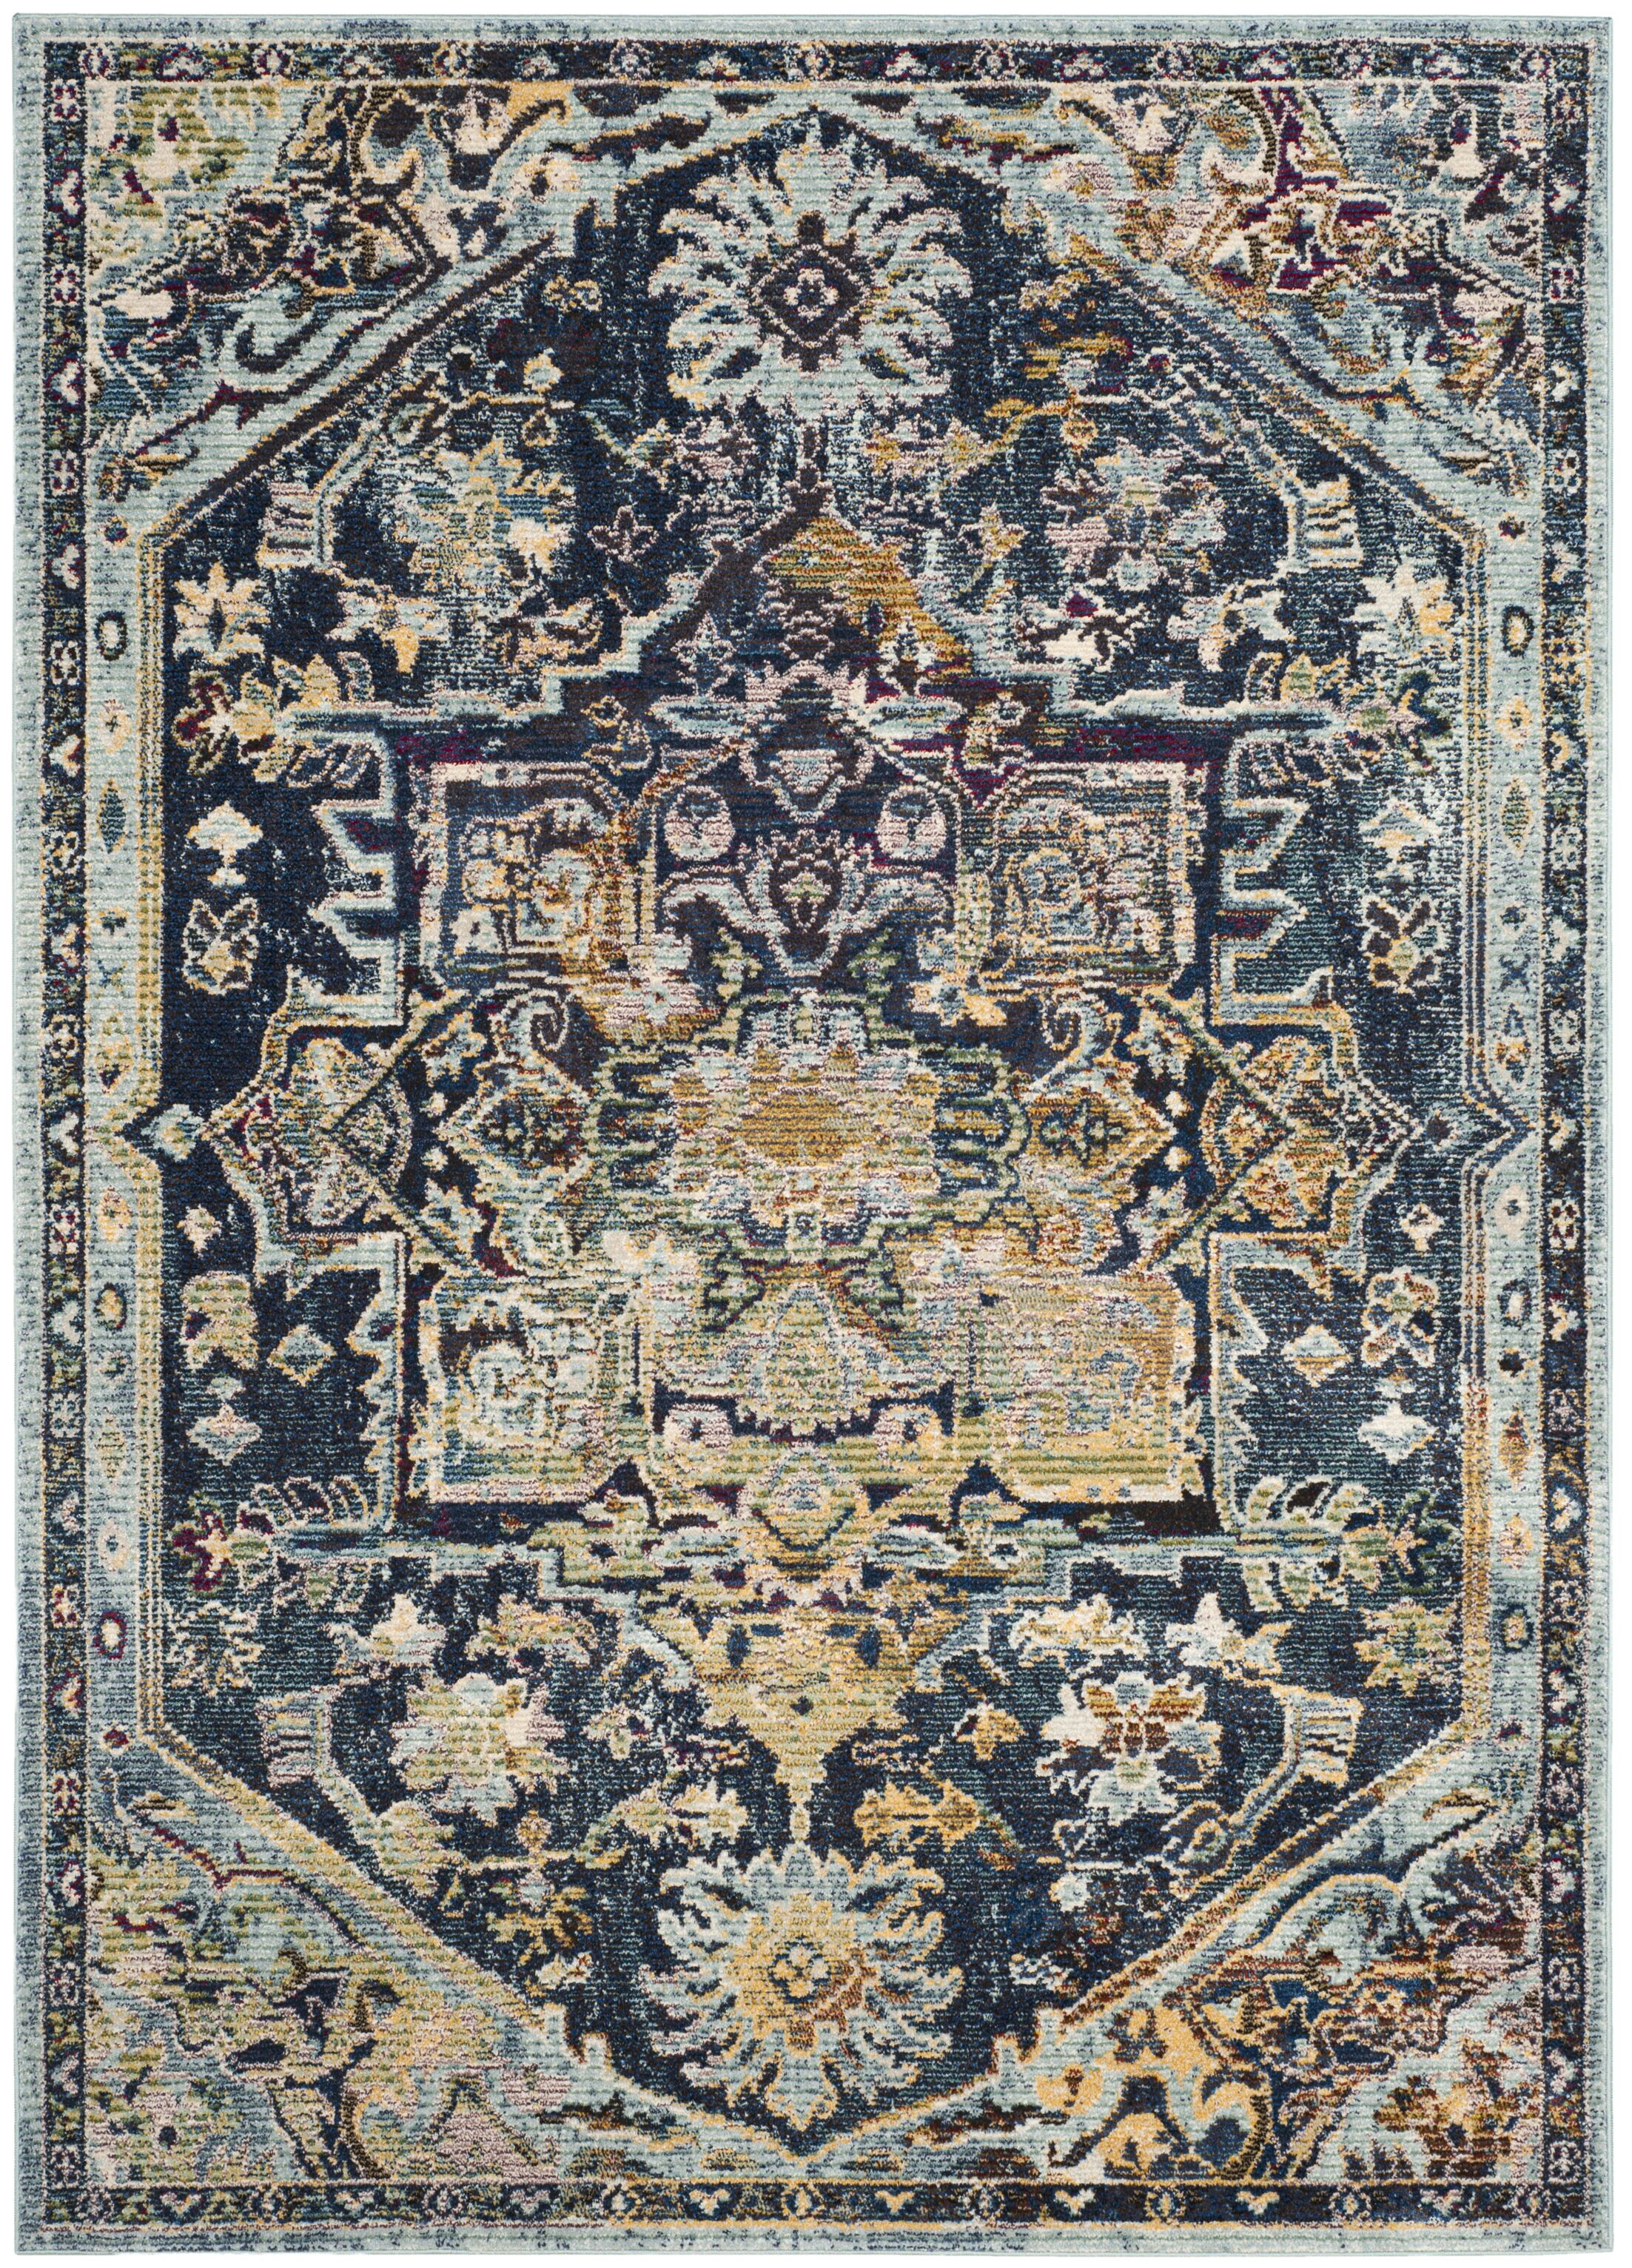 Mcintosh Boho Navy Area Rug  Rug Size: Rectangle 5'1